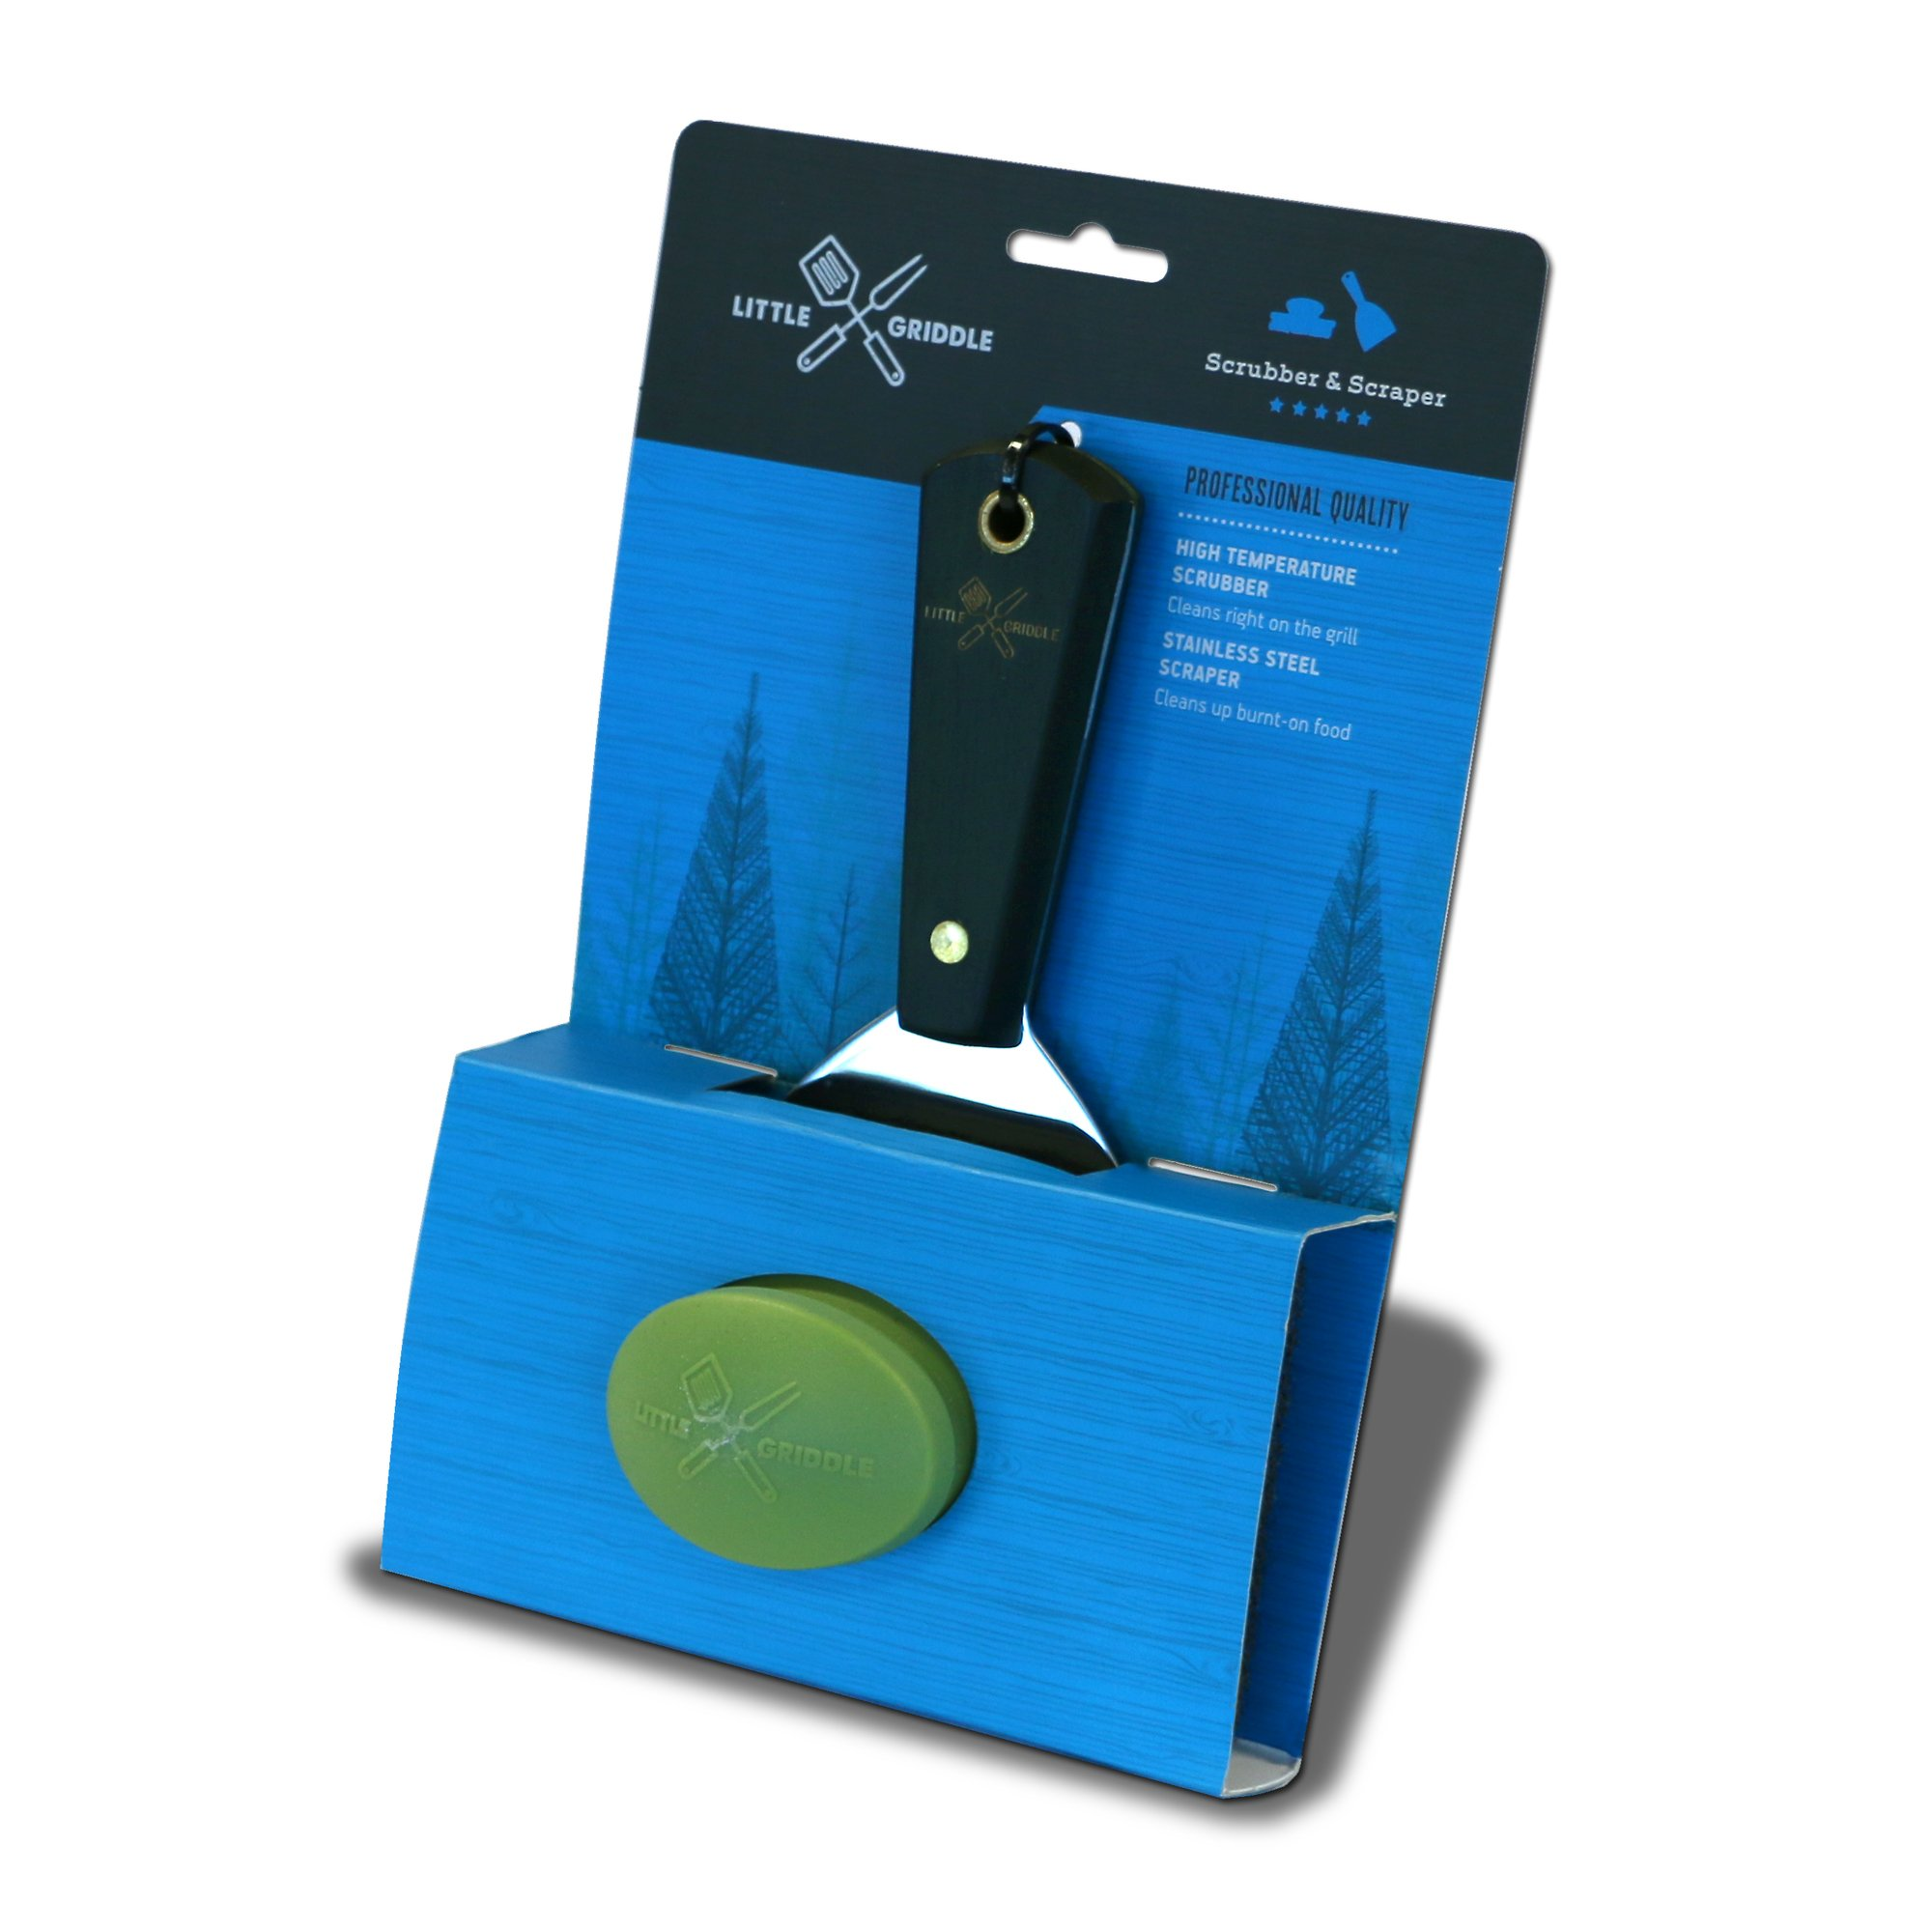 Little Griddle GK540 Grill Cleaning Kit, Silver/Black/Green